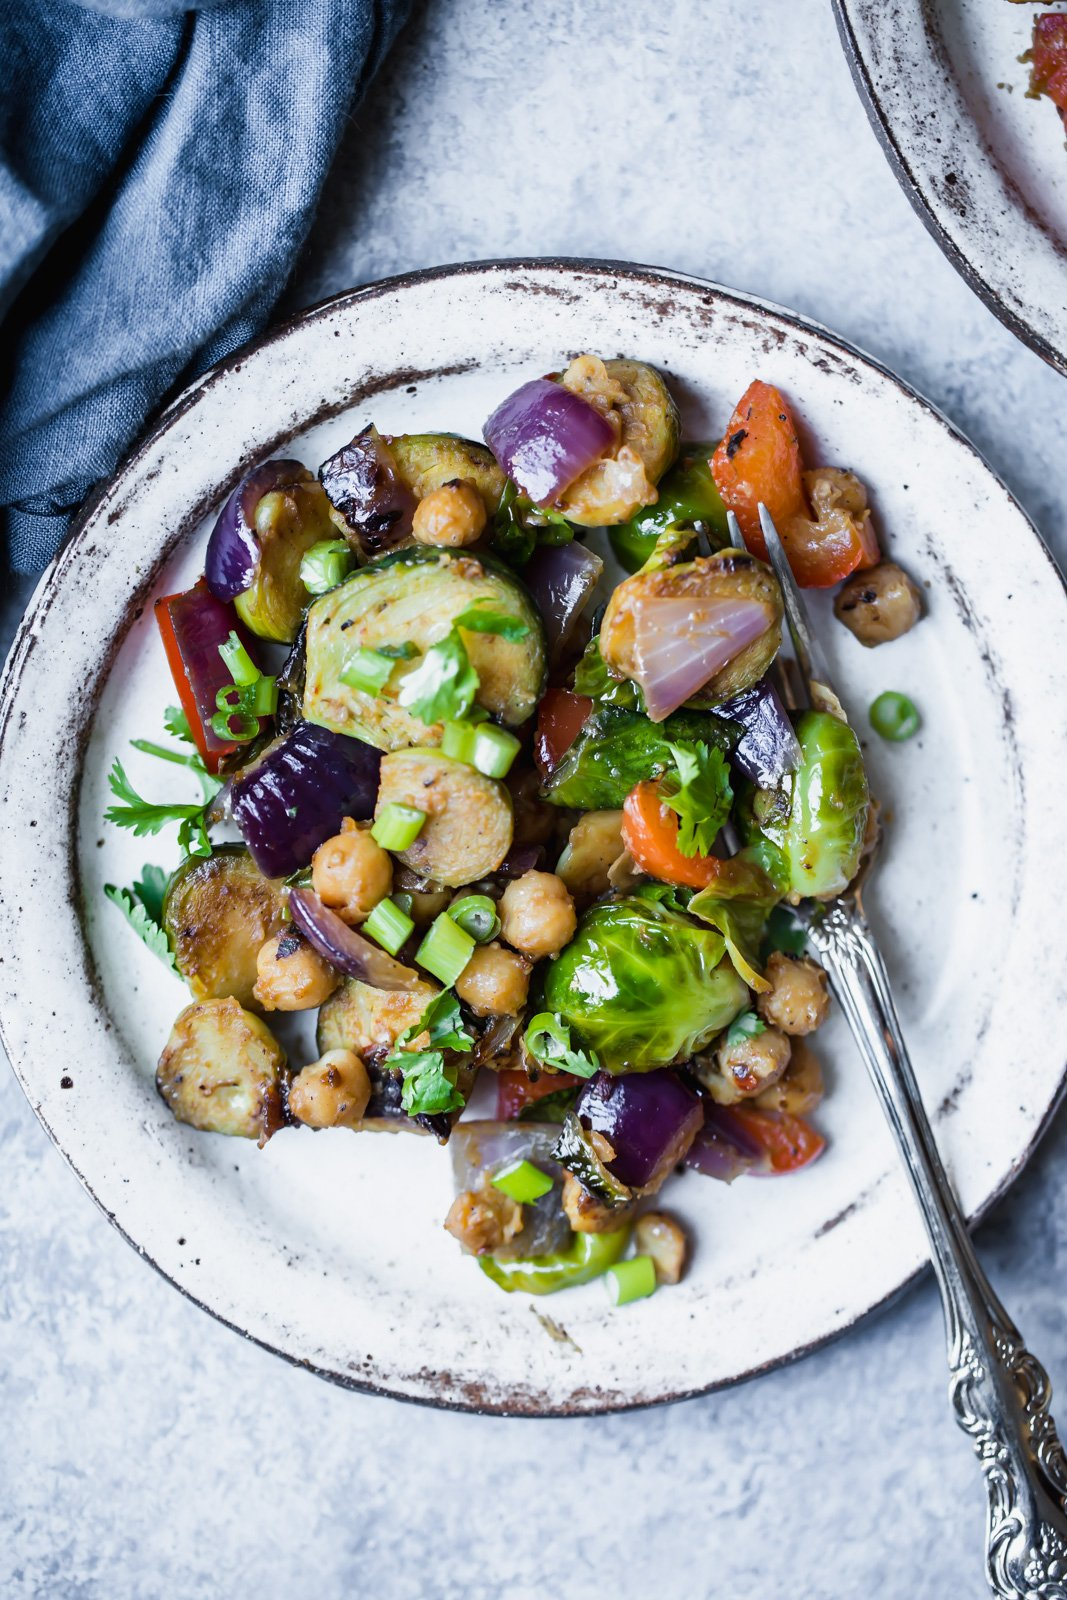 chickpeas, brussels sprouts and red onion on a white plate with a silver fork